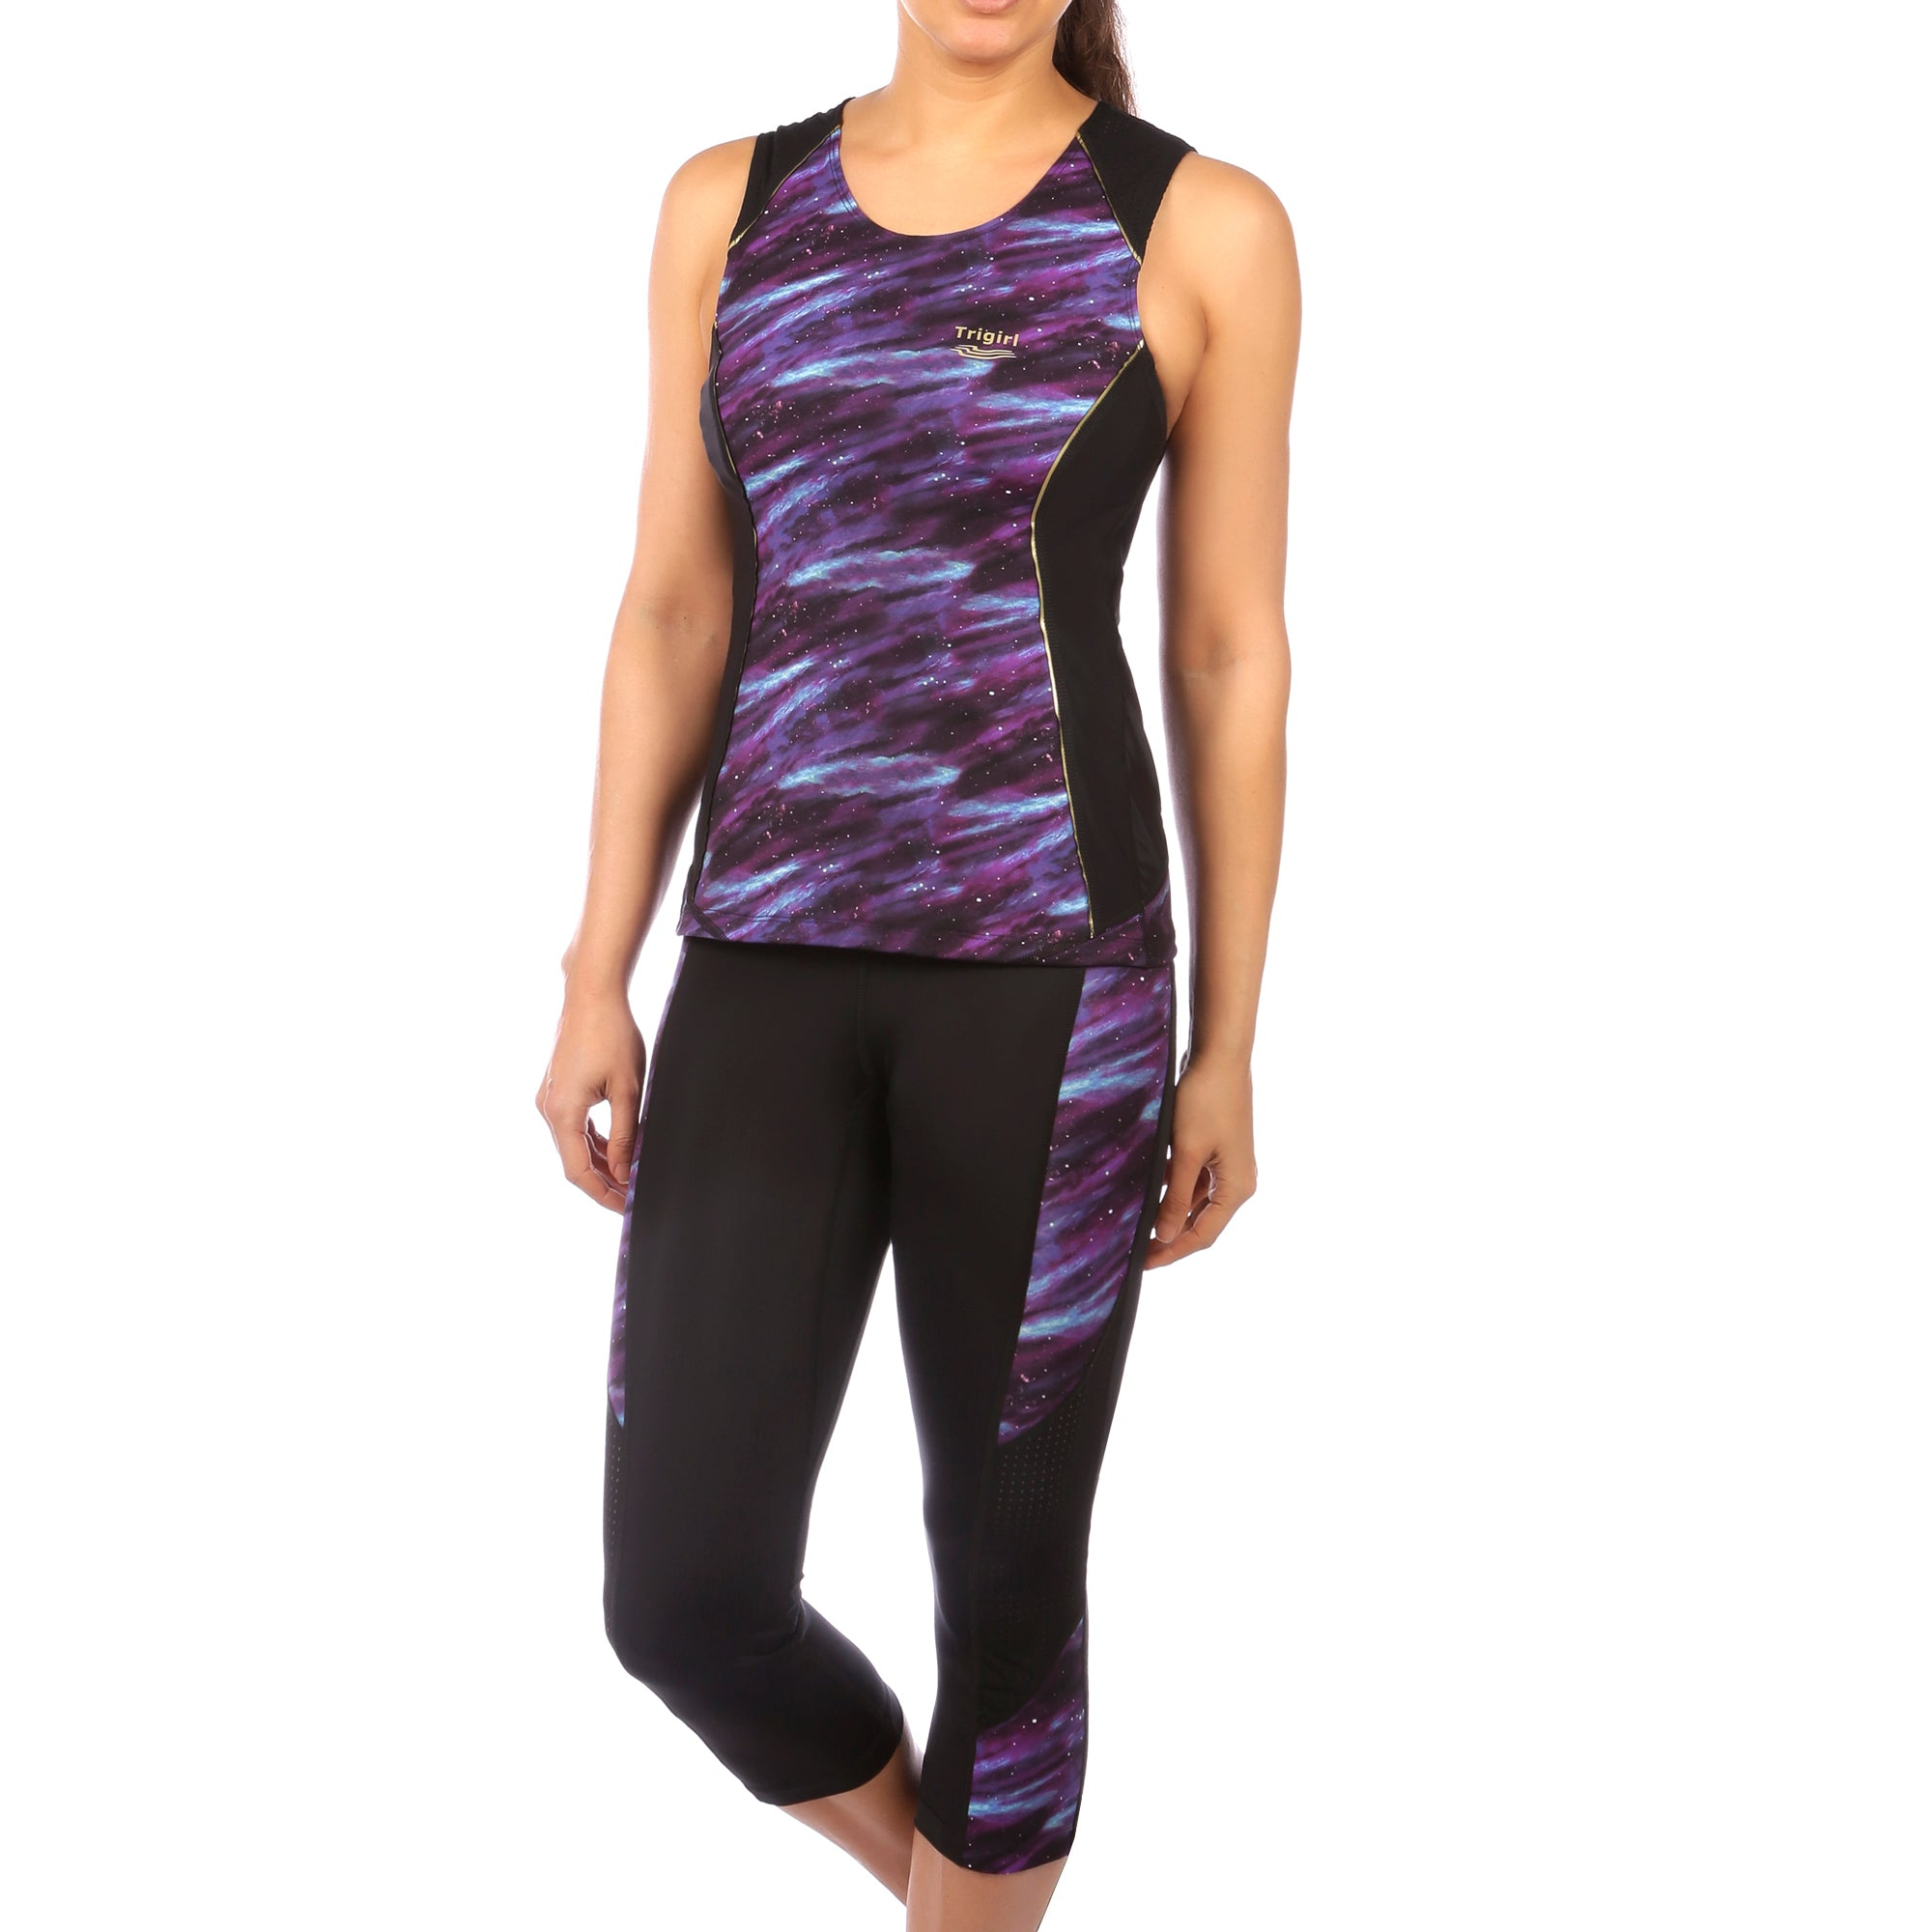 Gait Triathlon Capri in Purple Galaxy Print